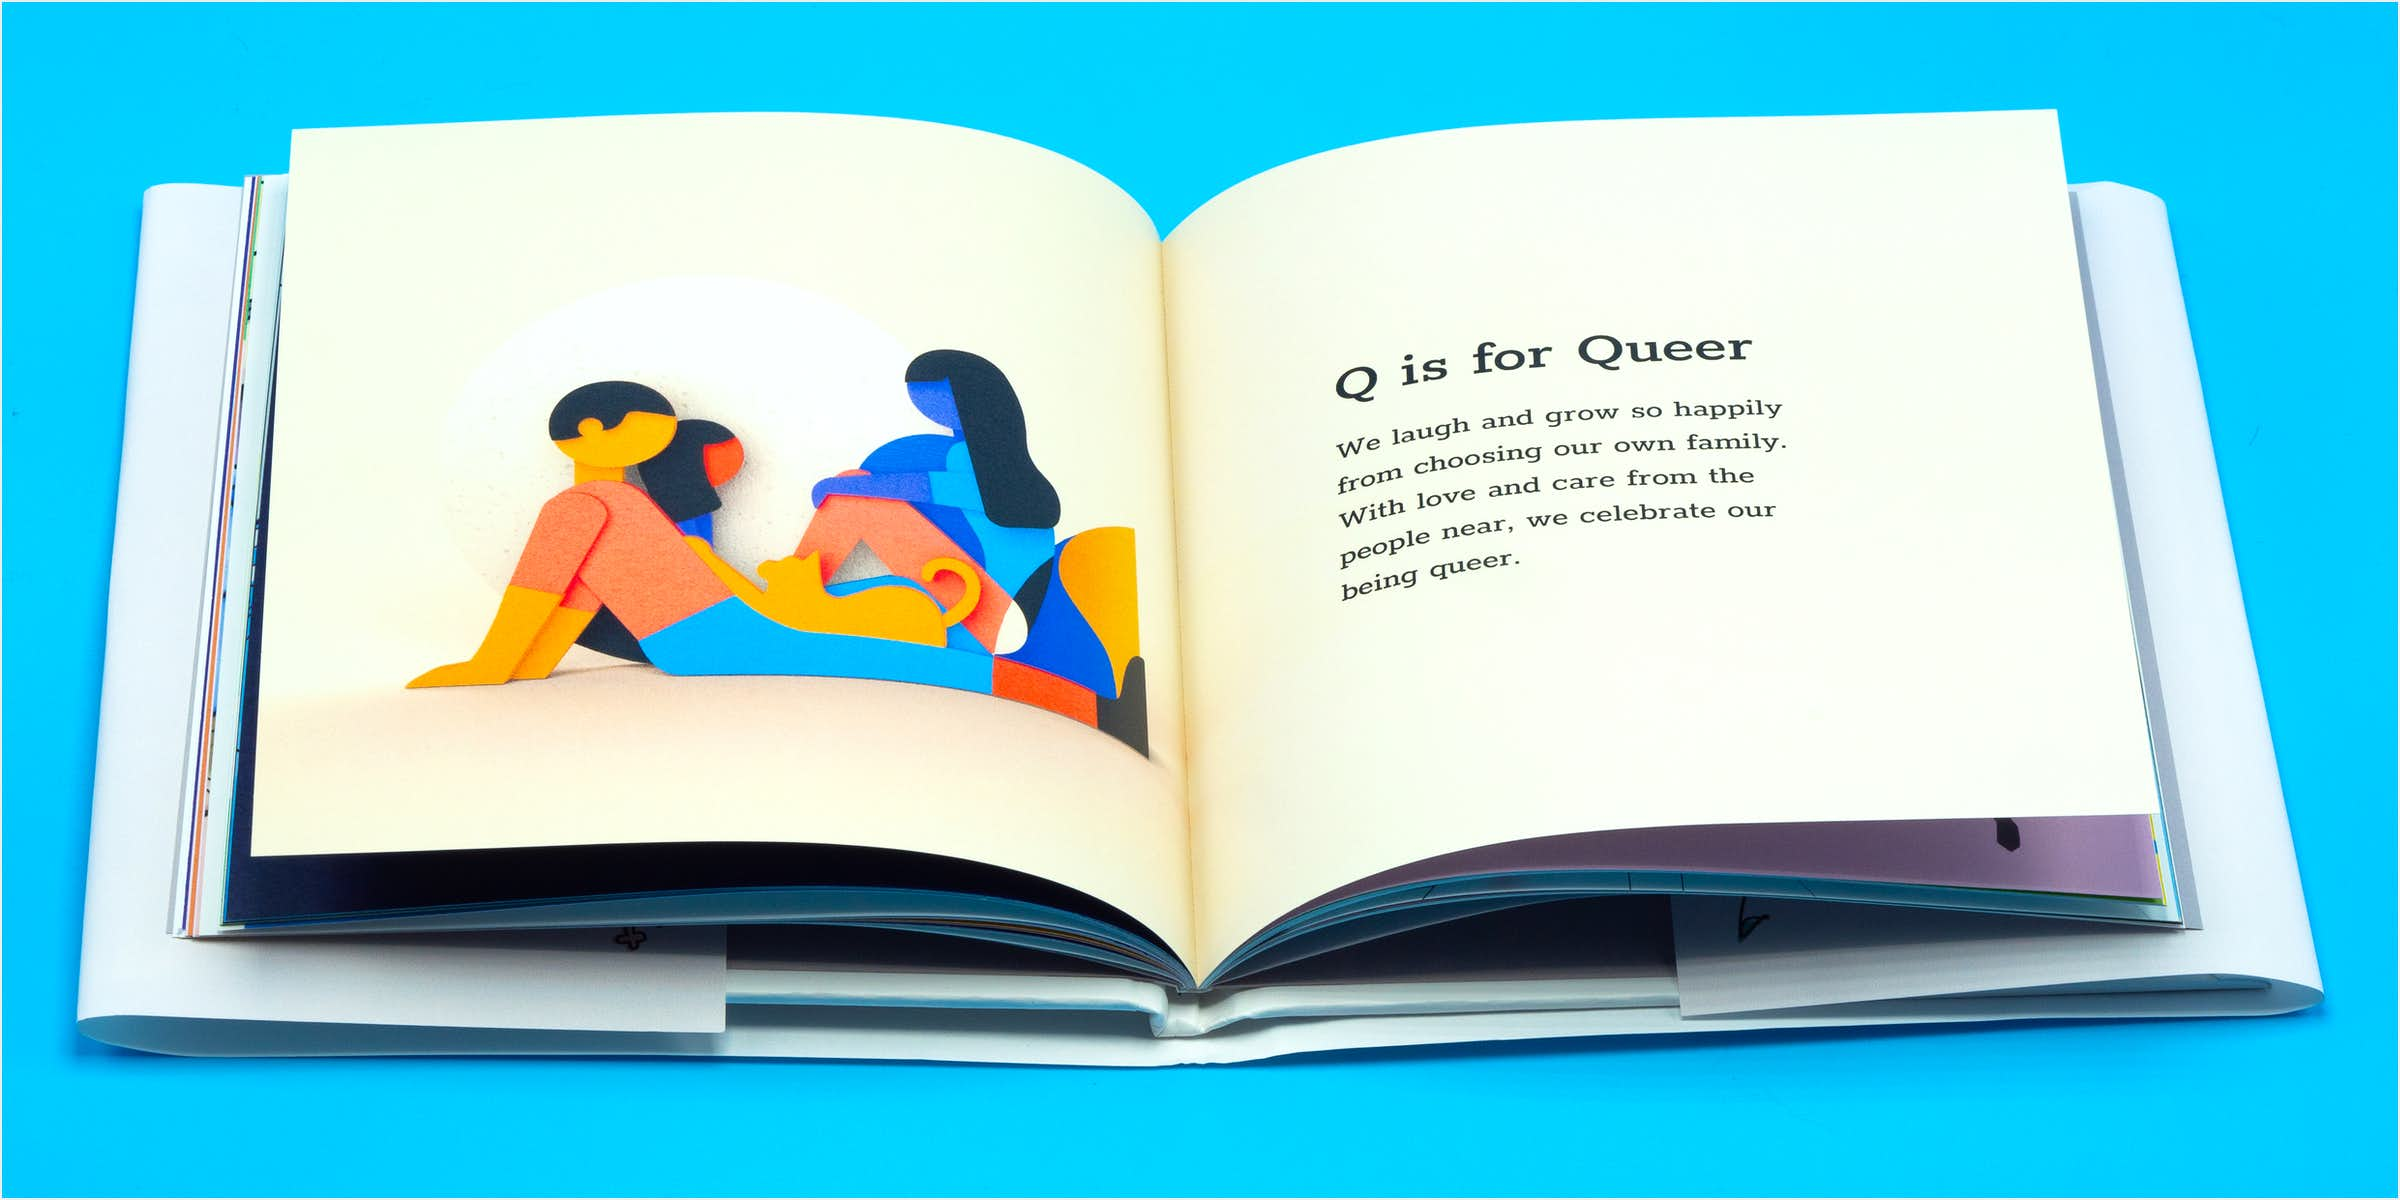 Q is for Queer